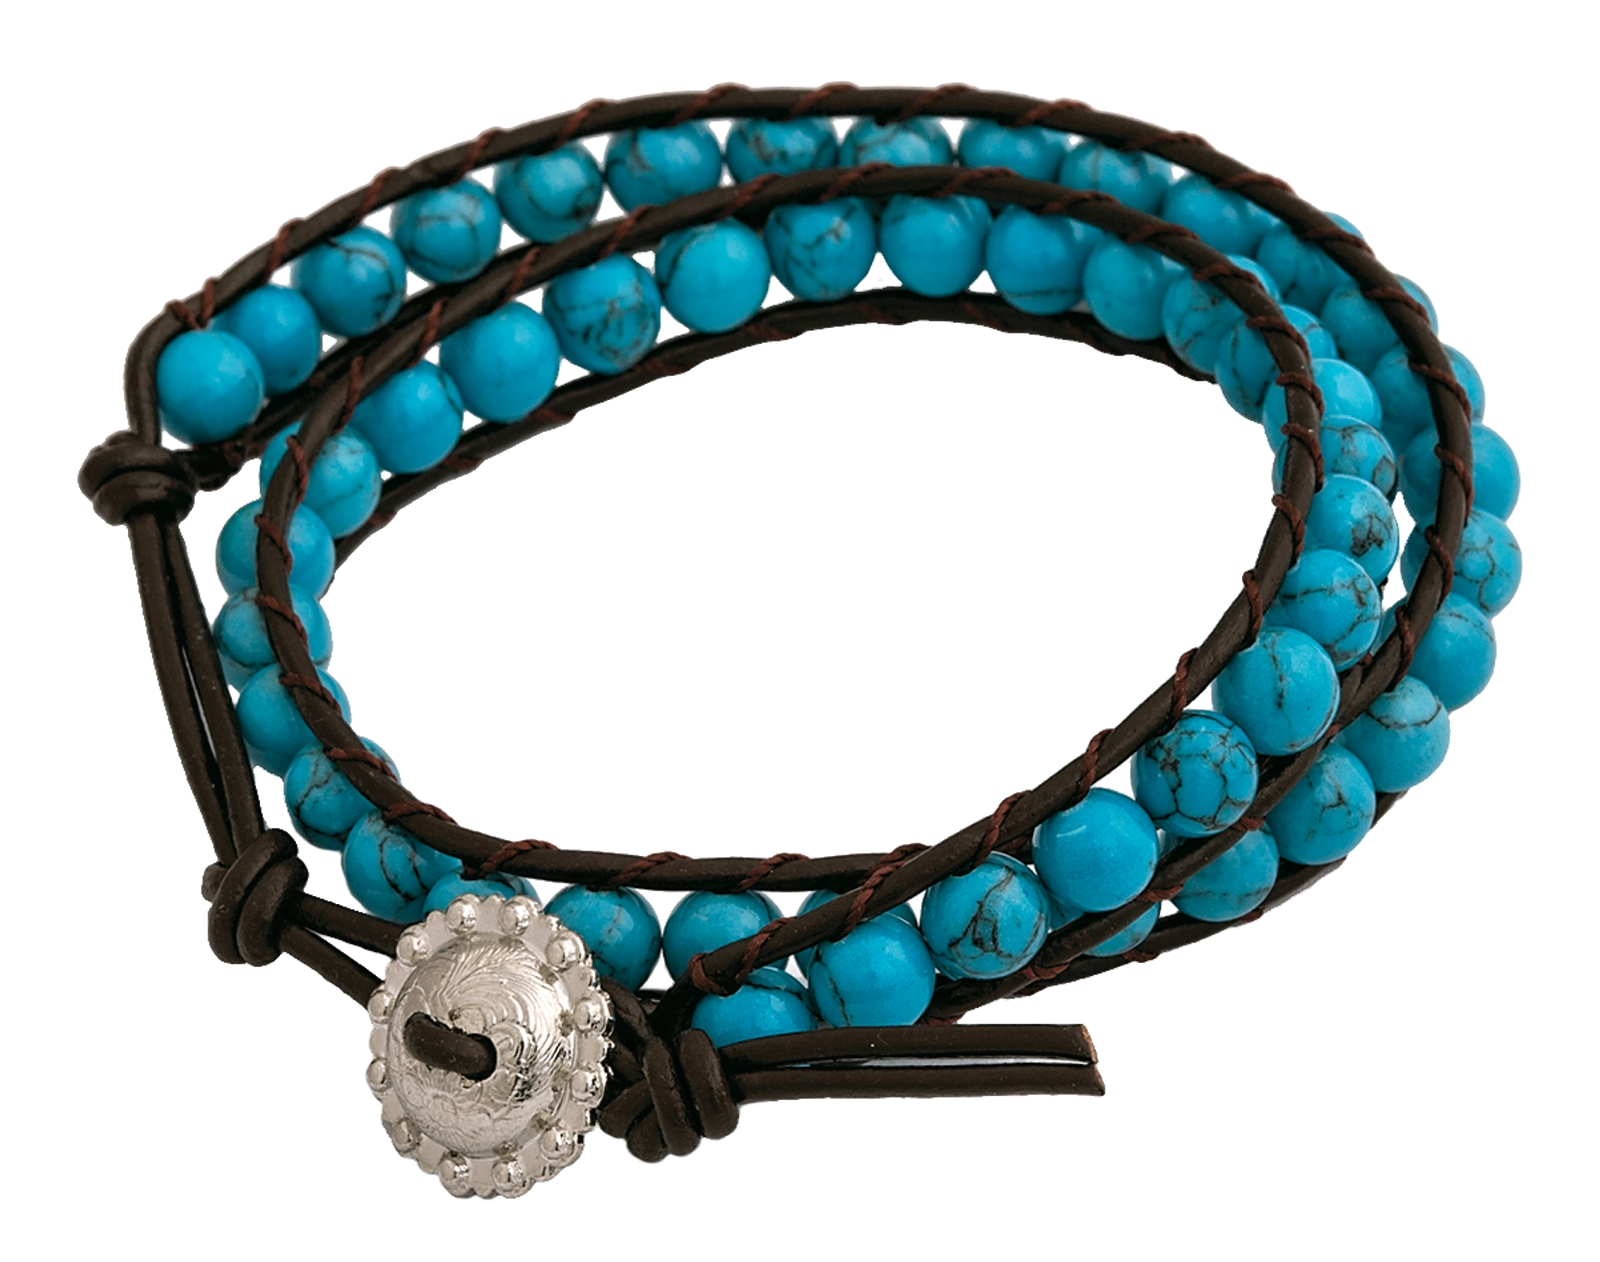 Montana Silversmiths Brown Leather Wrap Bracelet with Turquoise Beads